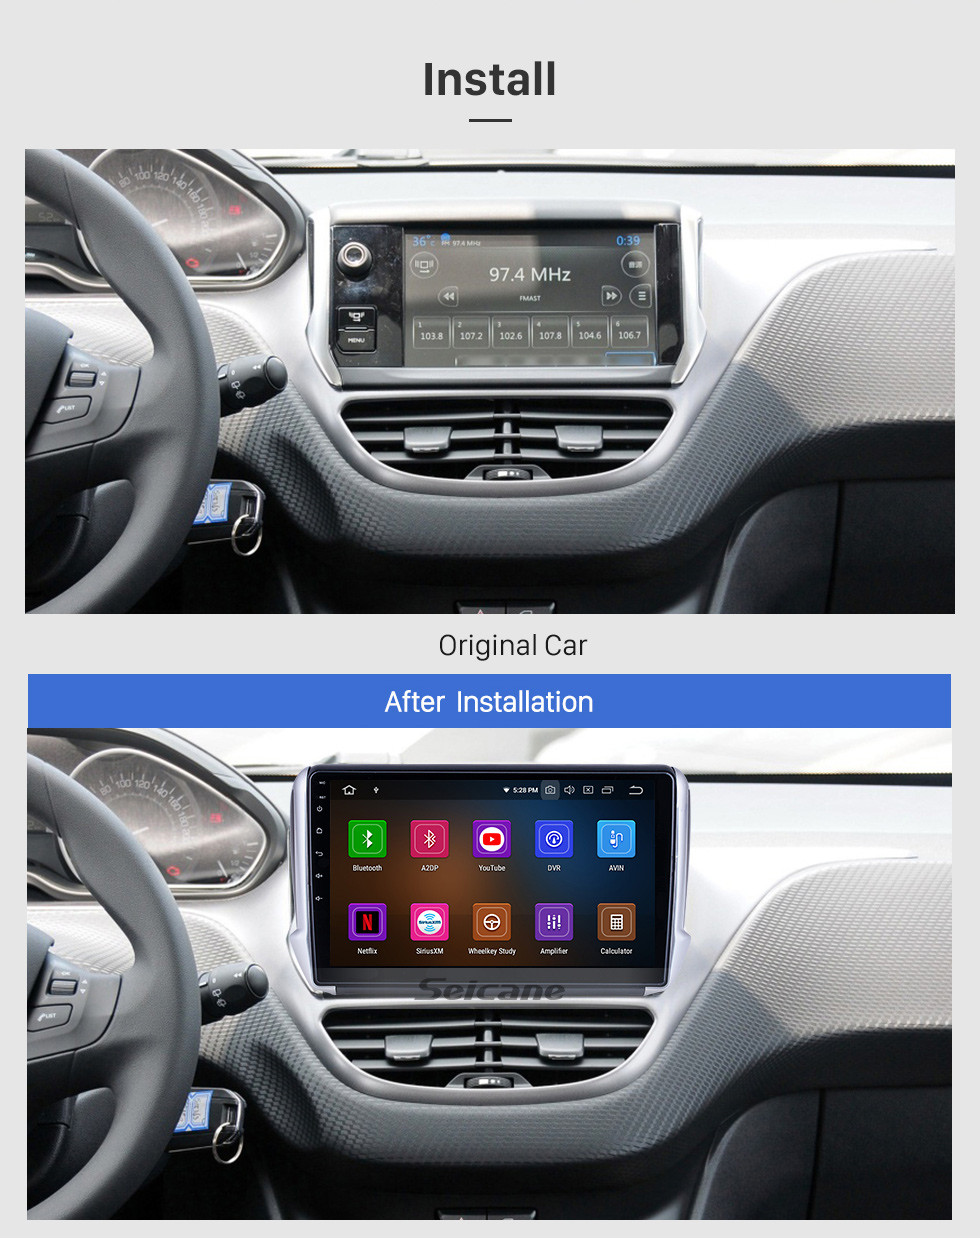 Seicane For 2014 Peugeot 2008 Radio Android 10.0 HD Touchscreen 10.1 inch with AUX Bluetooth GPS Navigation System Carplay support 1080P Video